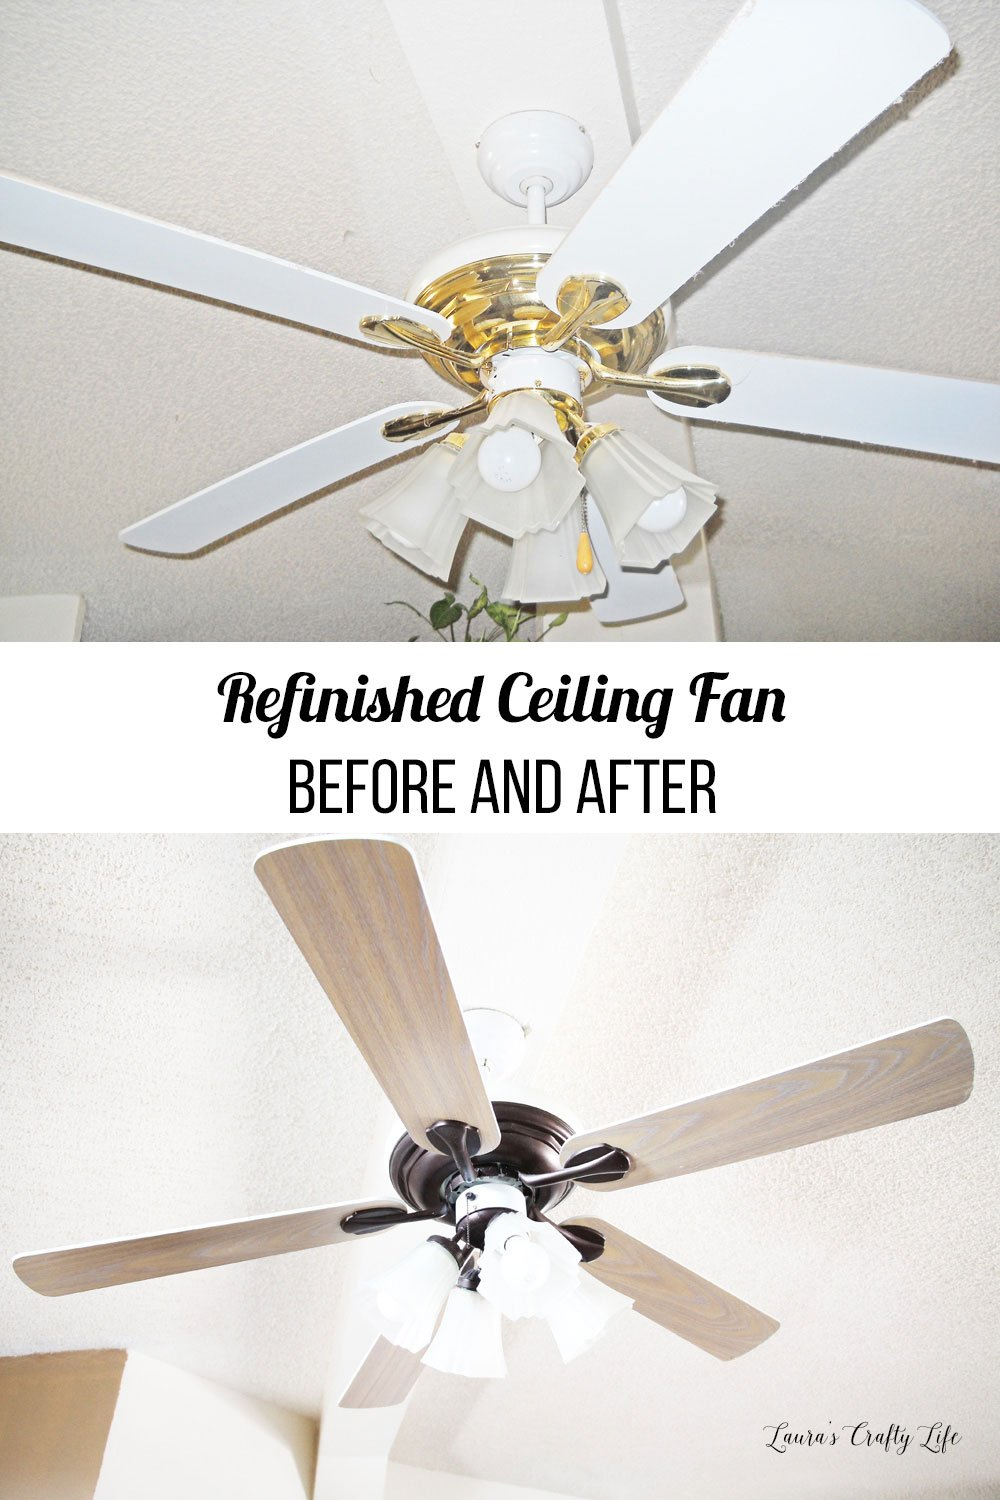 Refinished ceiling fan before and after